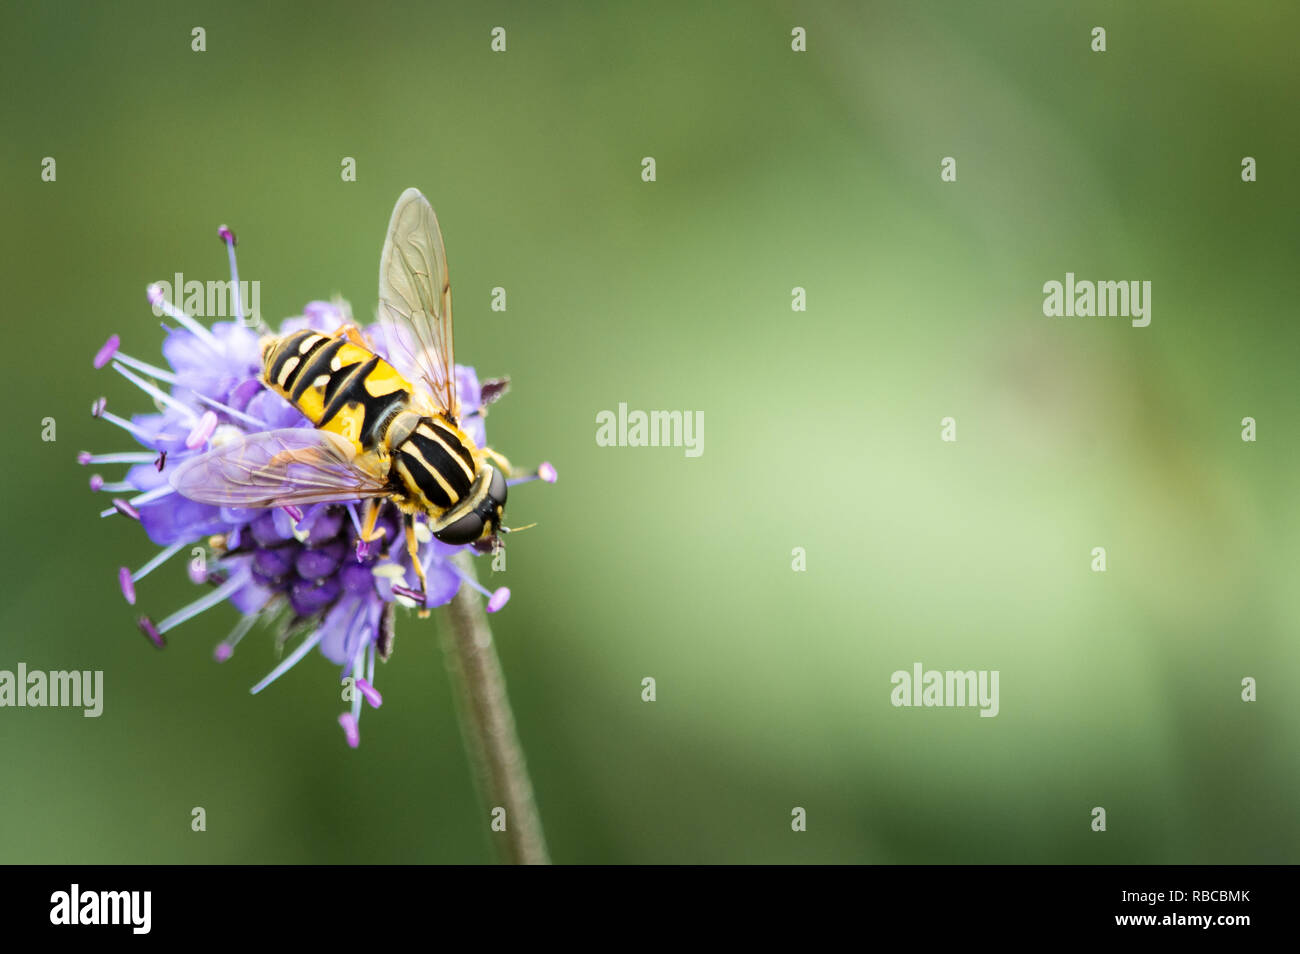 Hoverfly on Devil's-bit Scabious - Stock Image